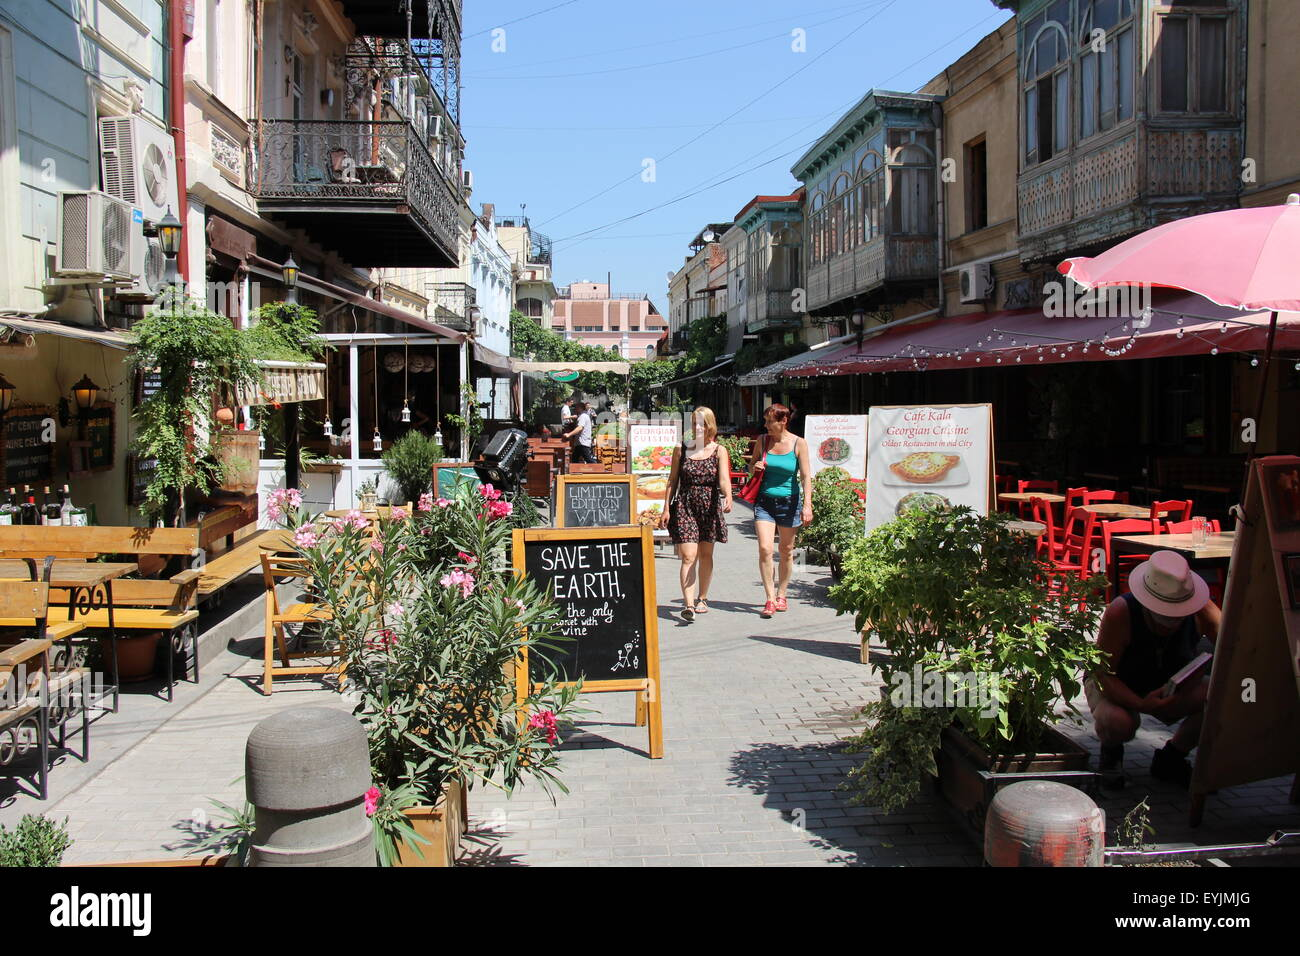 Restored area of Tbilisi, Georgia with bars and restaurants - Stock Image